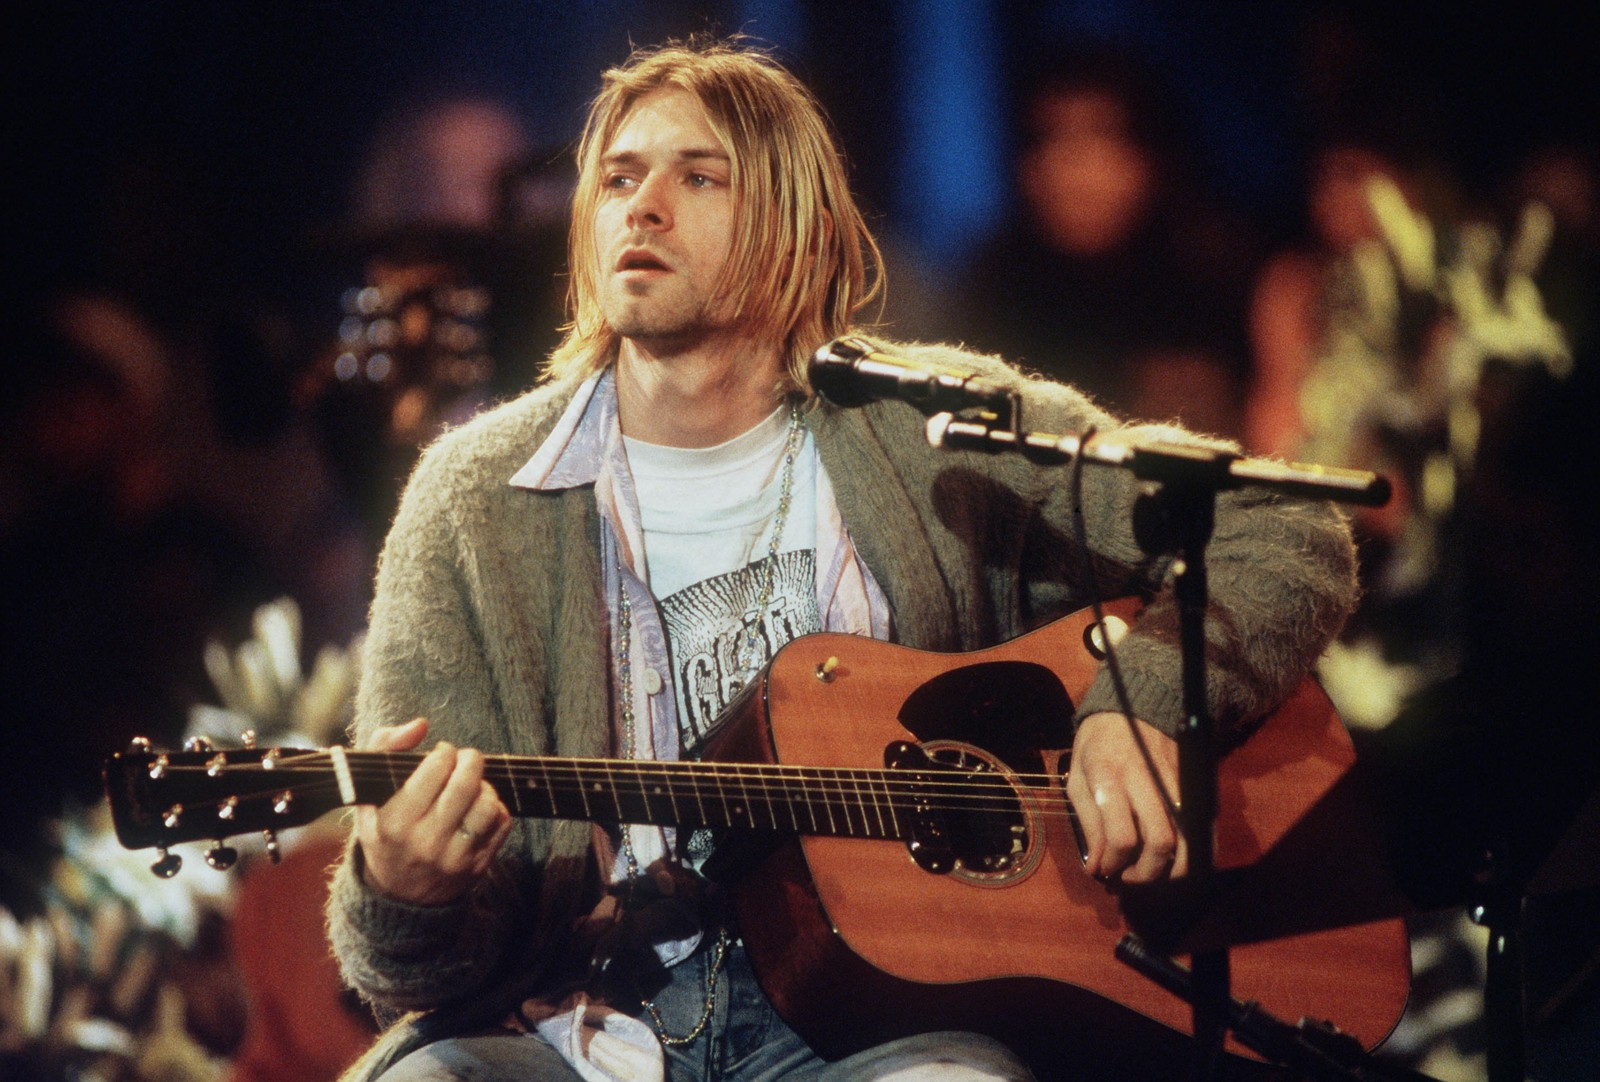 Mtv unplugged the 15 best episodes rollingstone medium mtvs unplugged is coming back to the airwaves and were celebrating by counting down the 15 best episodes from jay z to nirvana malvernweather Choice Image